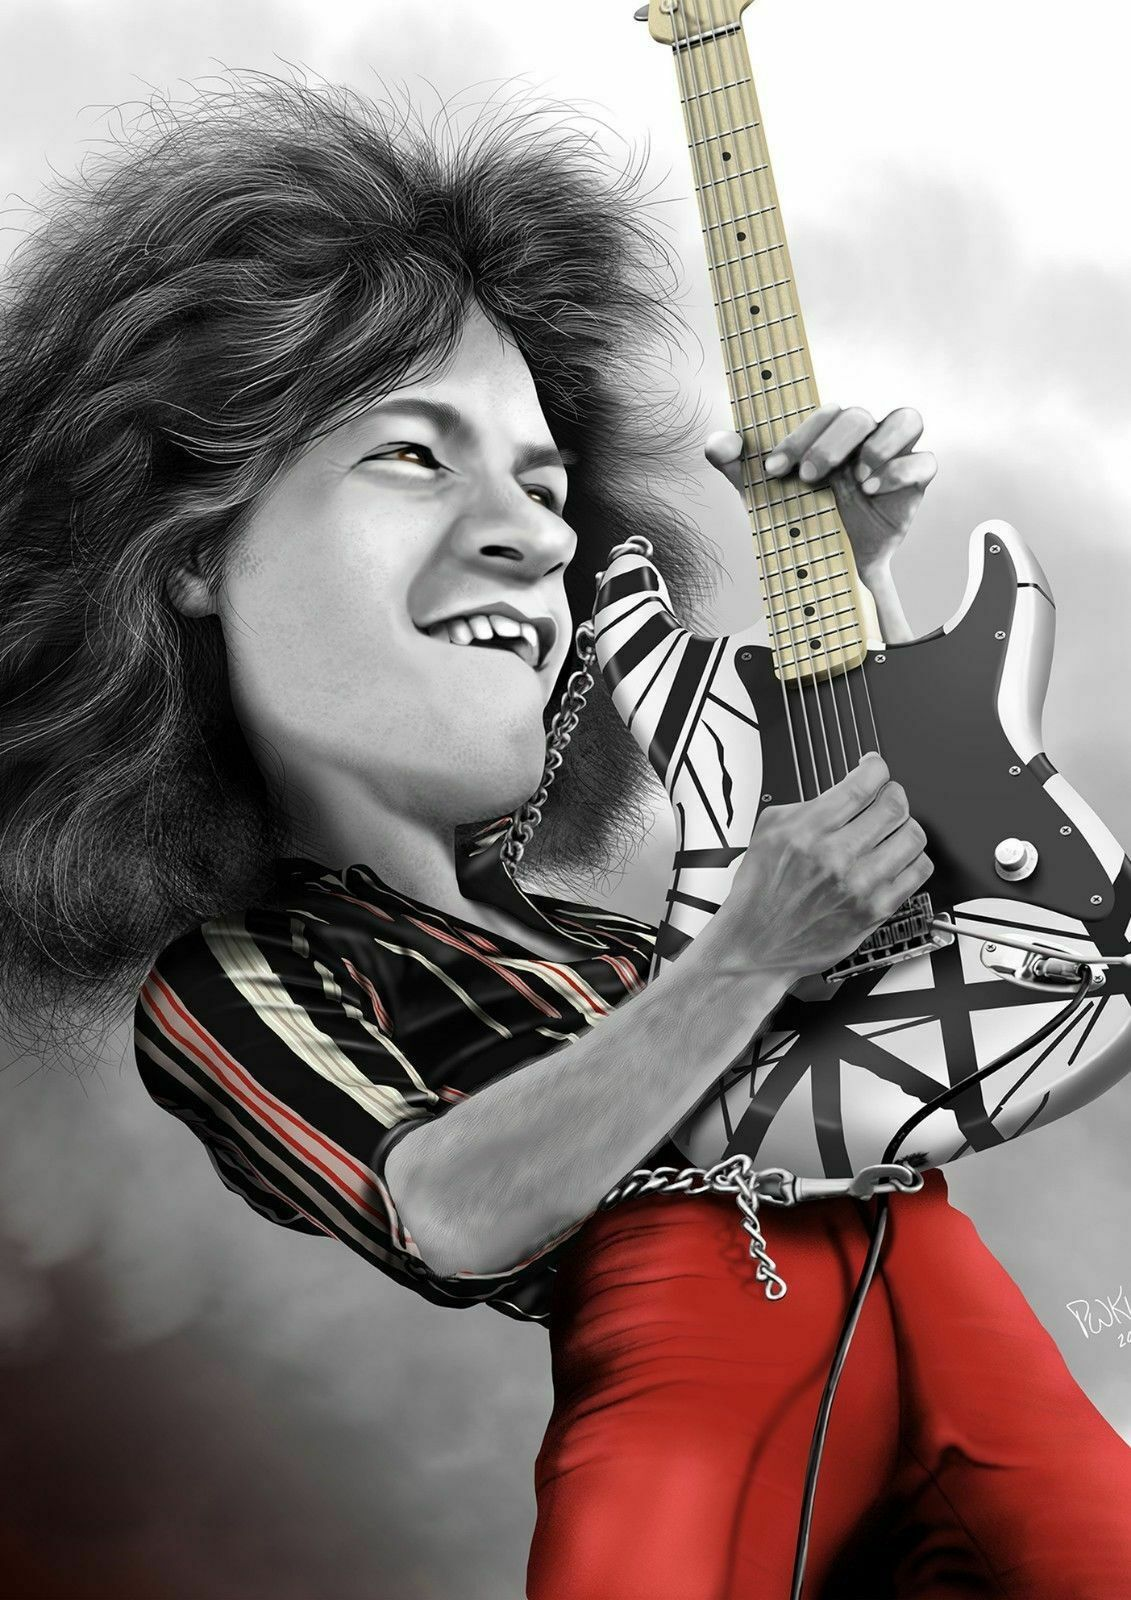 Art Print Poster Canvas Eddie Van Halen Caricature Ebay In 2020 Caricature Eddie Van Halen Celebrities Funny